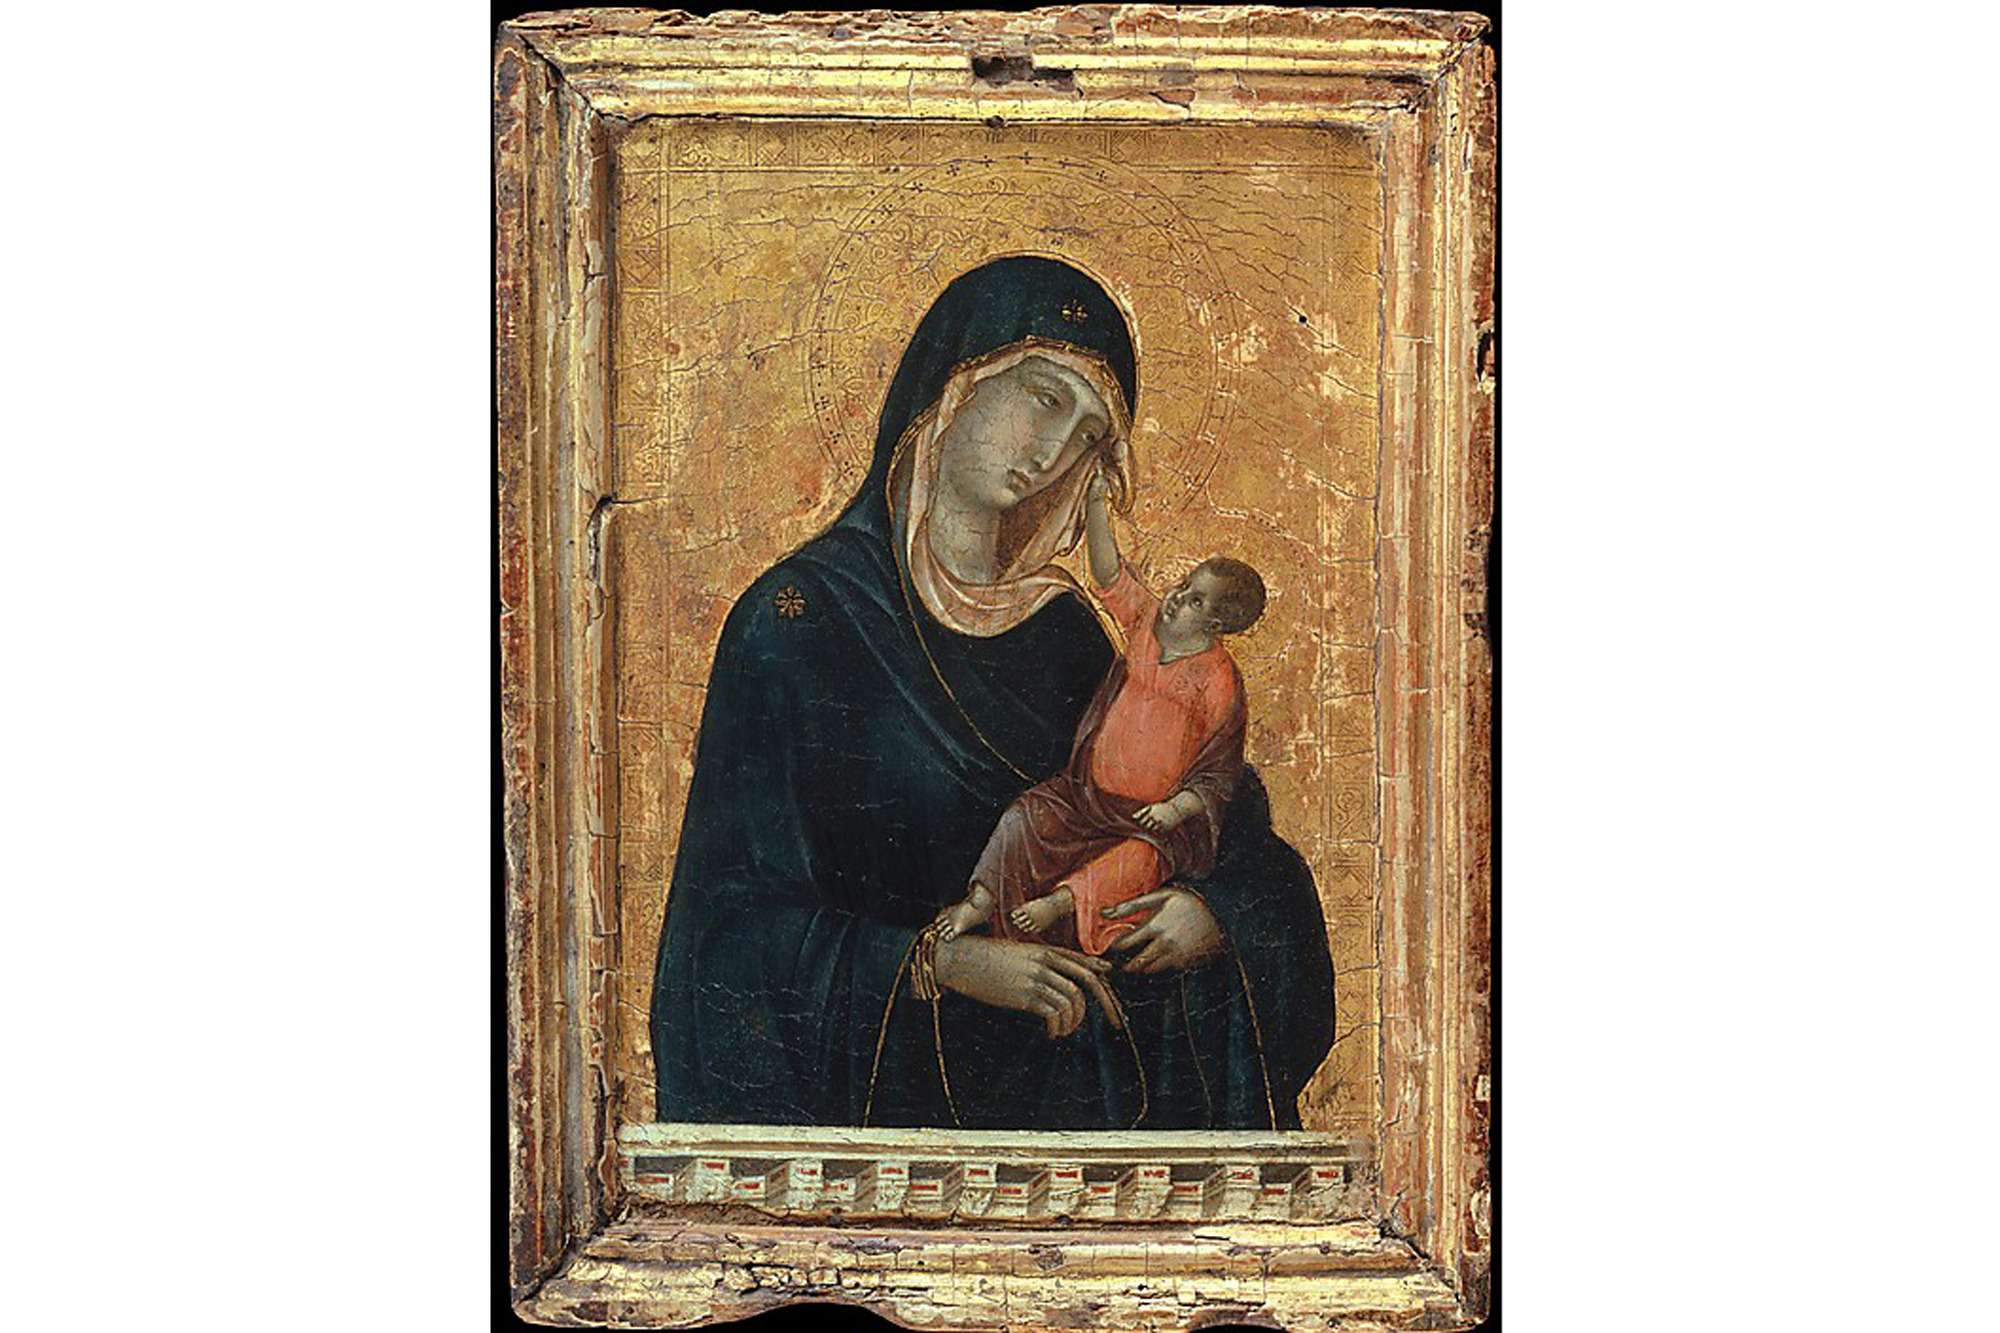 Duccio di Buoninsegna, Madonna and Child (ca. 1300)